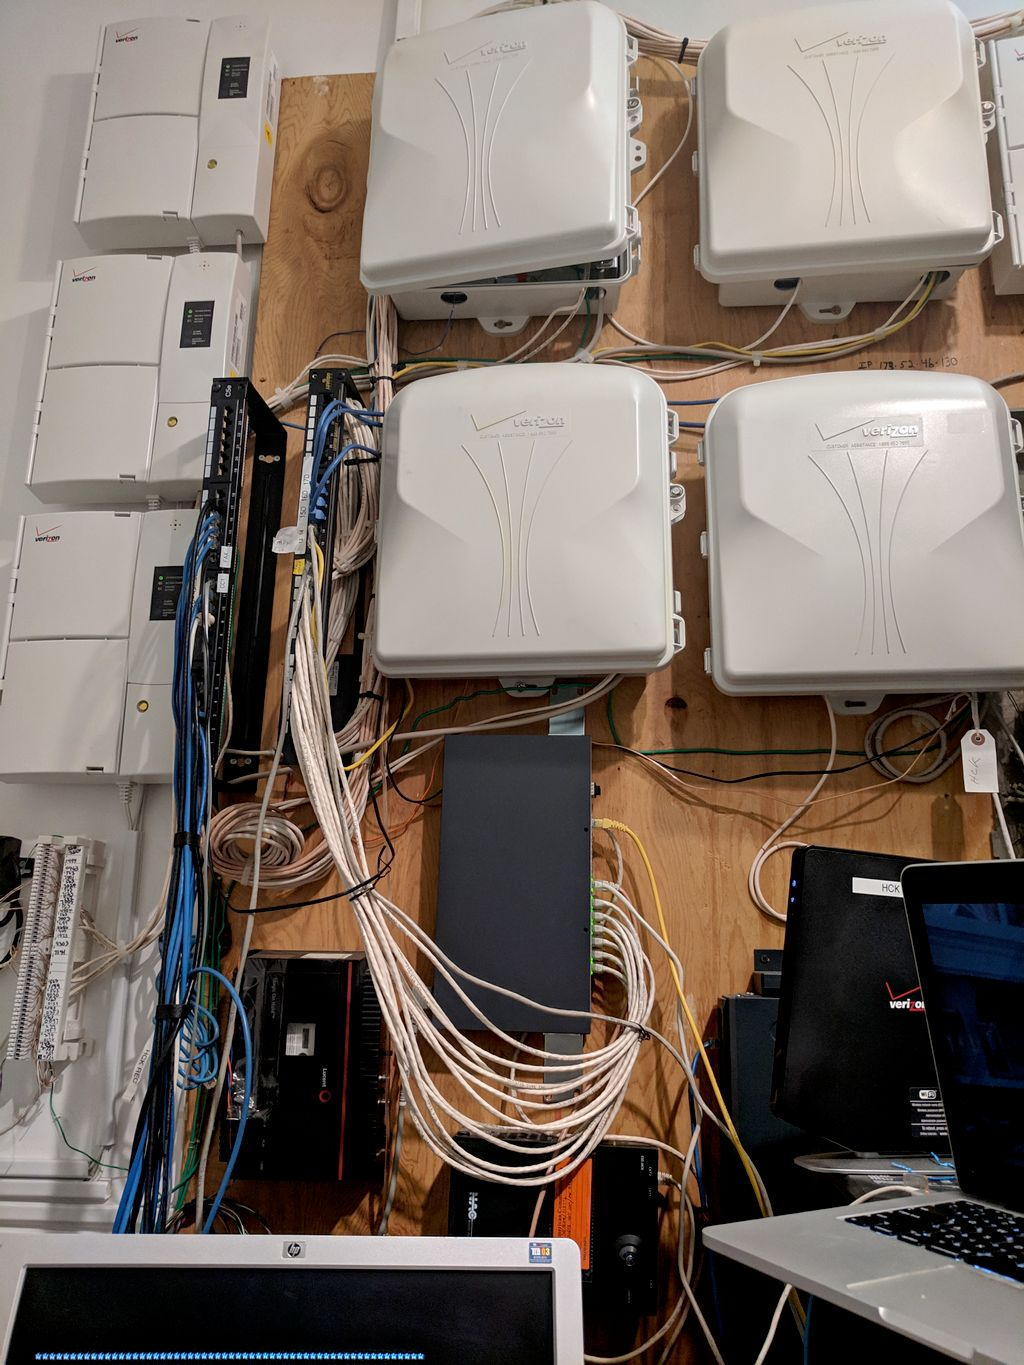 Network and Computer Administration Studio Support